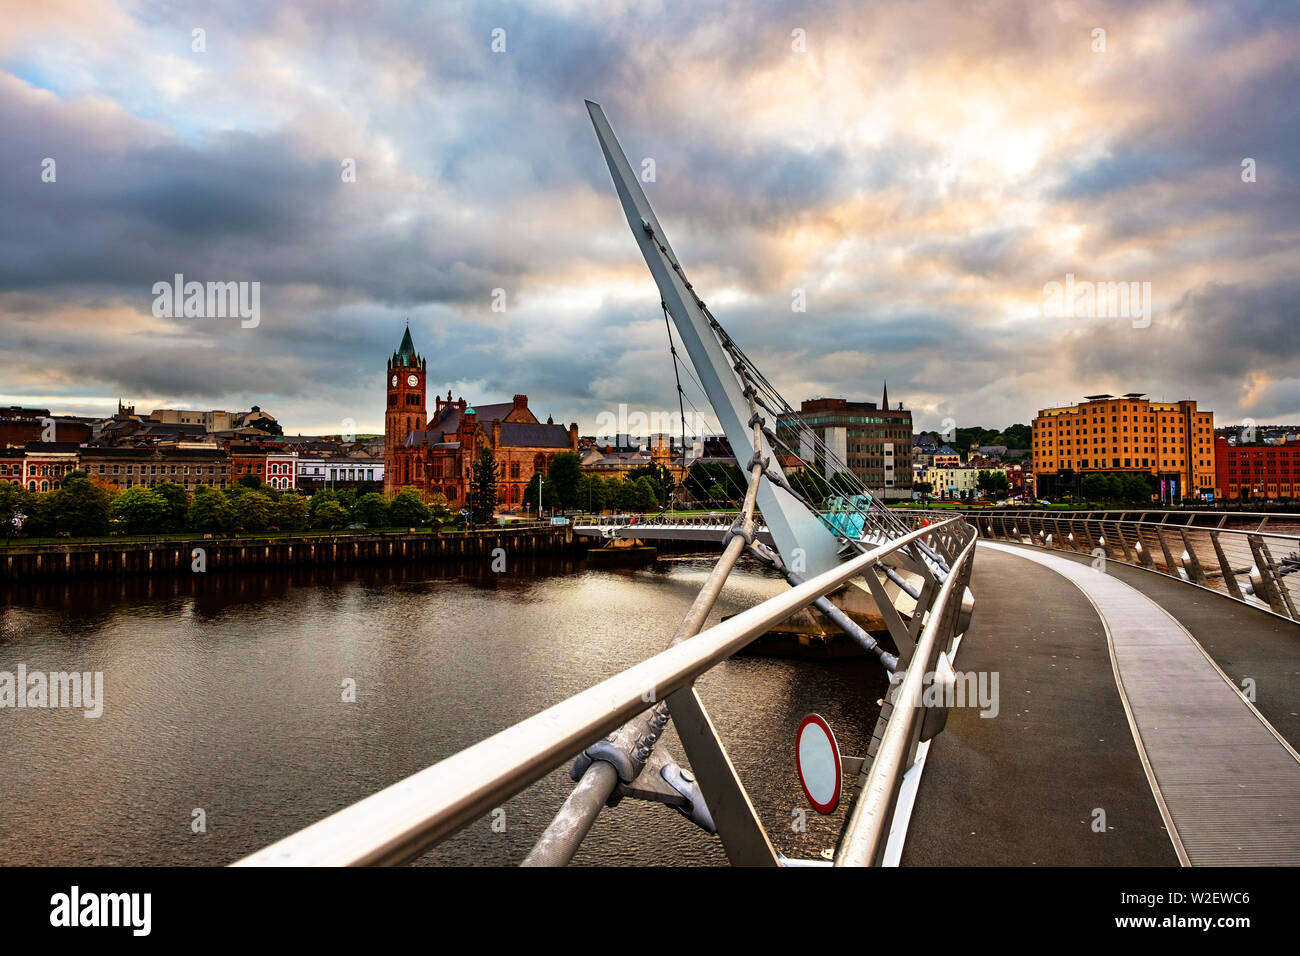 Derry, Northern Ireland. Peace bridge in Derry Londonderry in Northern Ireland, UK with city center at the background. Sunny evening with cloudy sky, - Stock Image